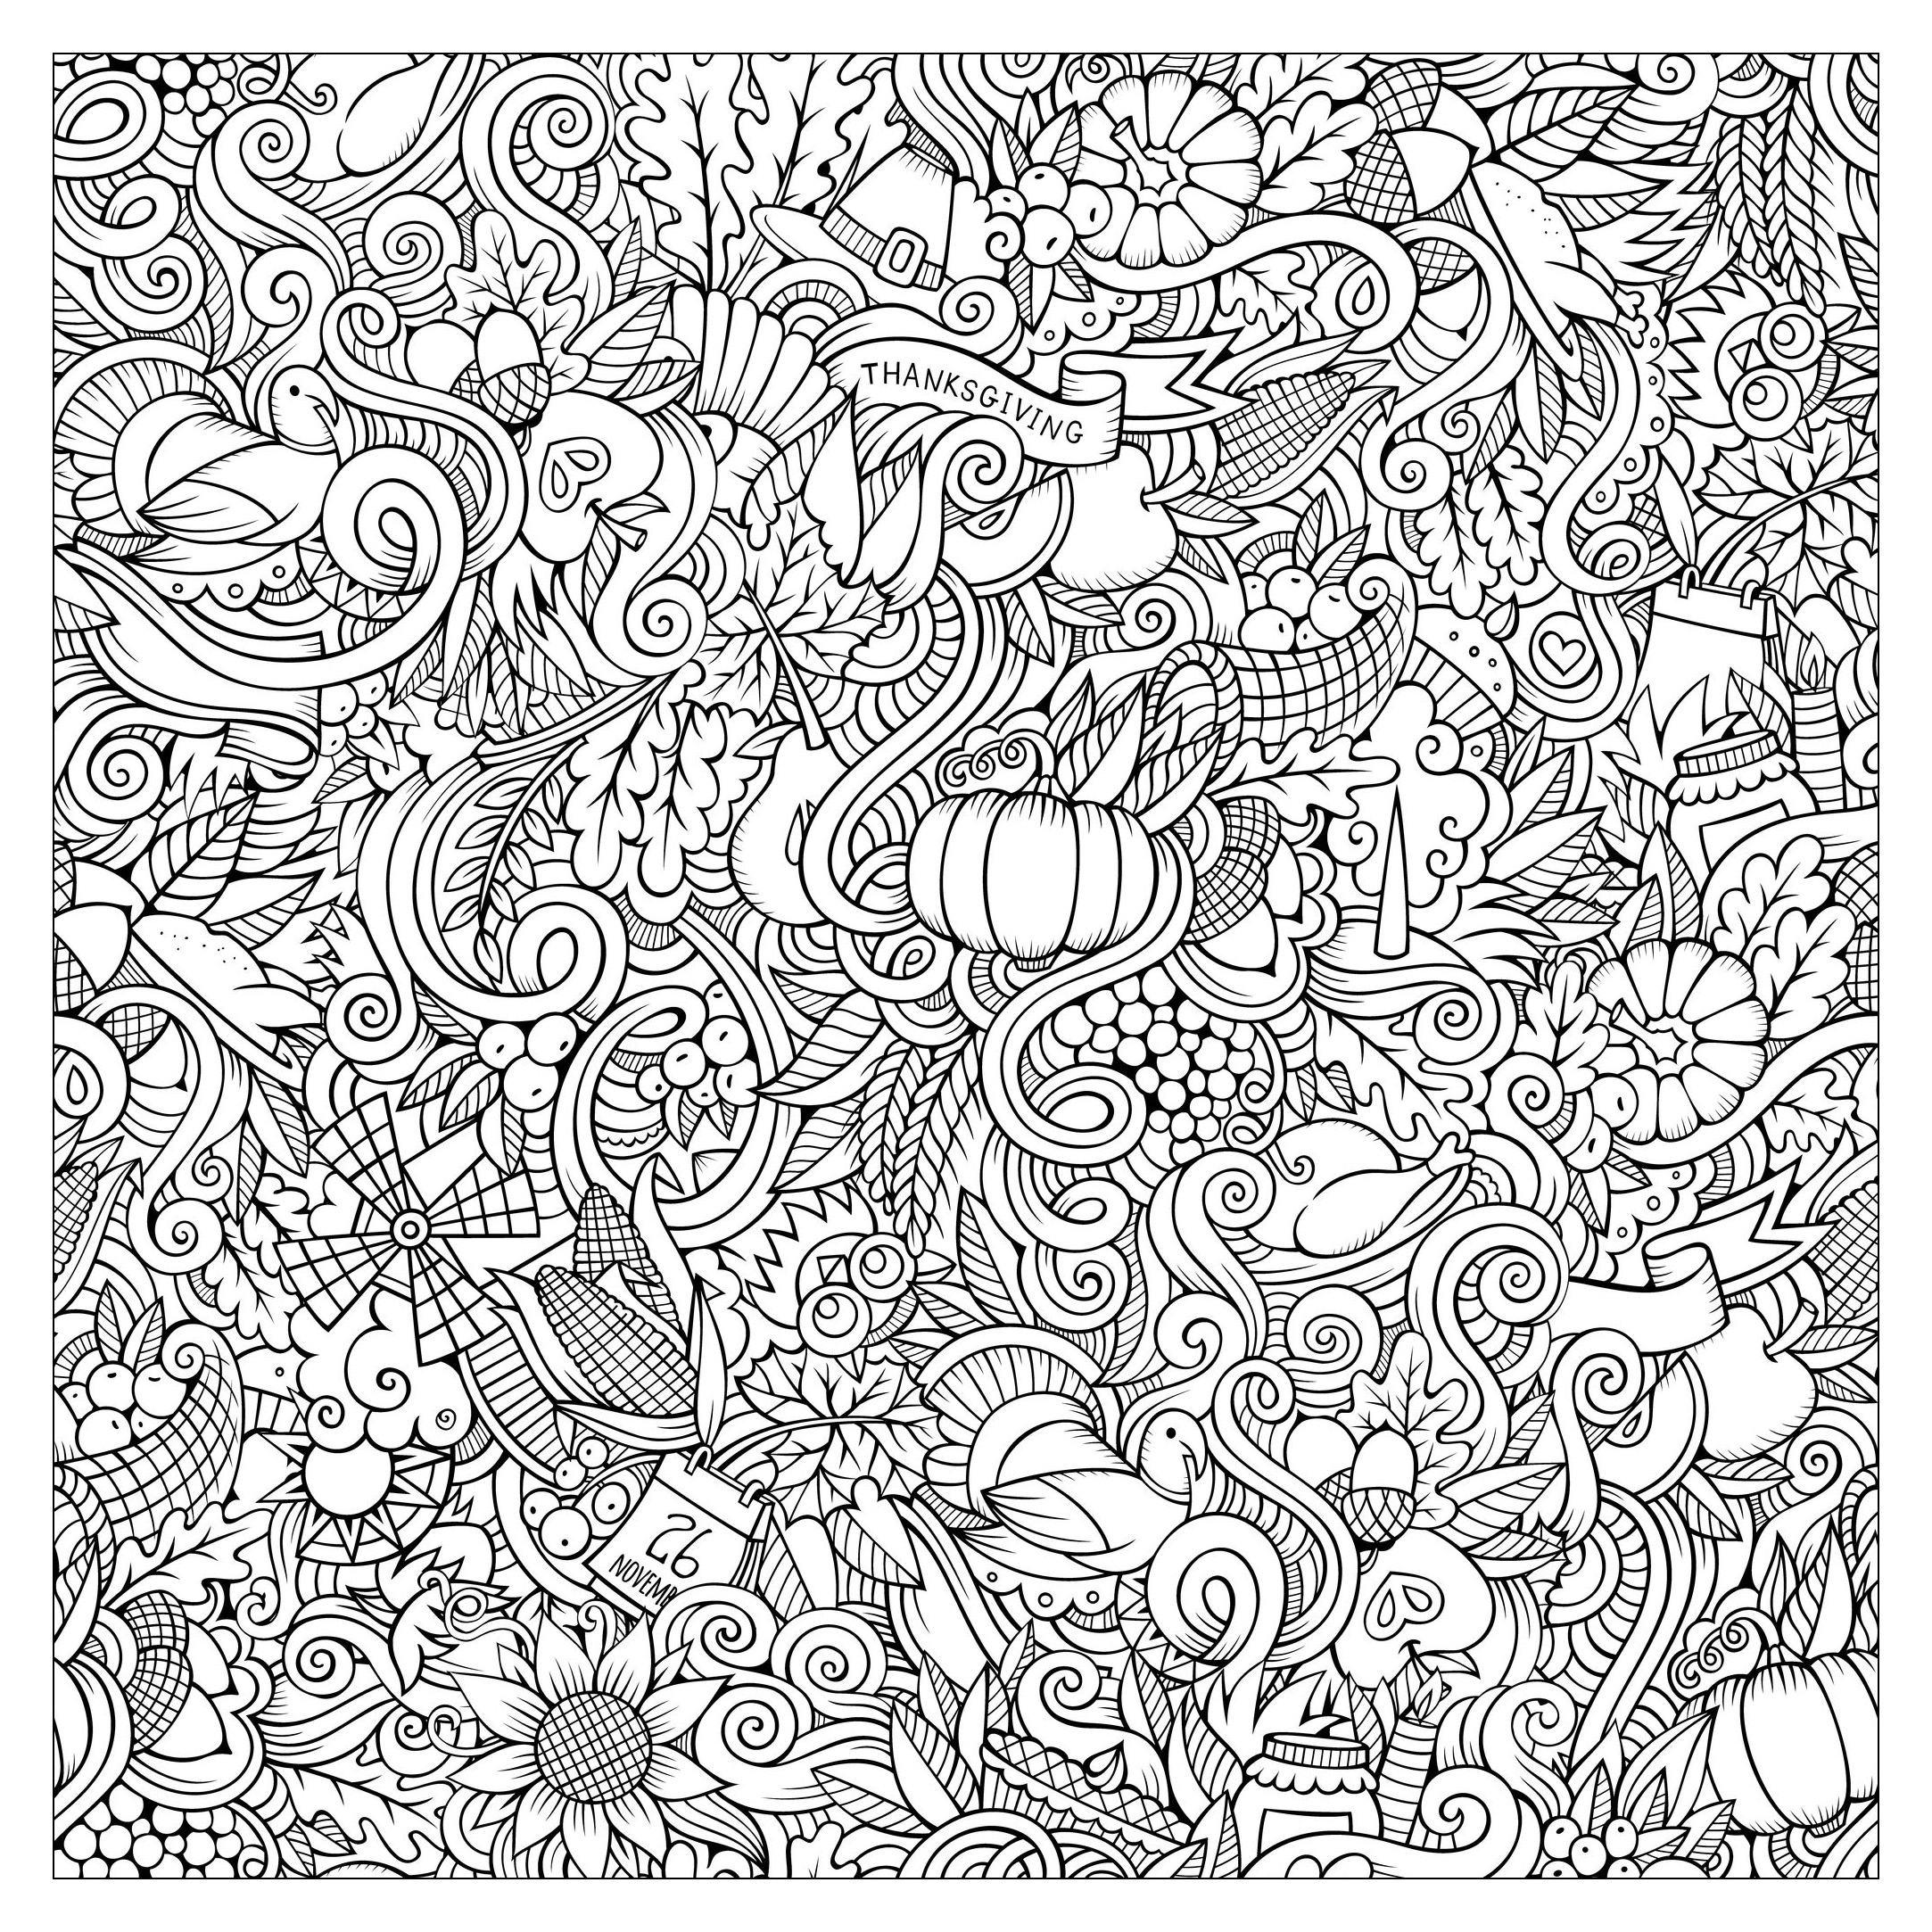 Cartoon vector hand drawn doodles thanksgiving autumn